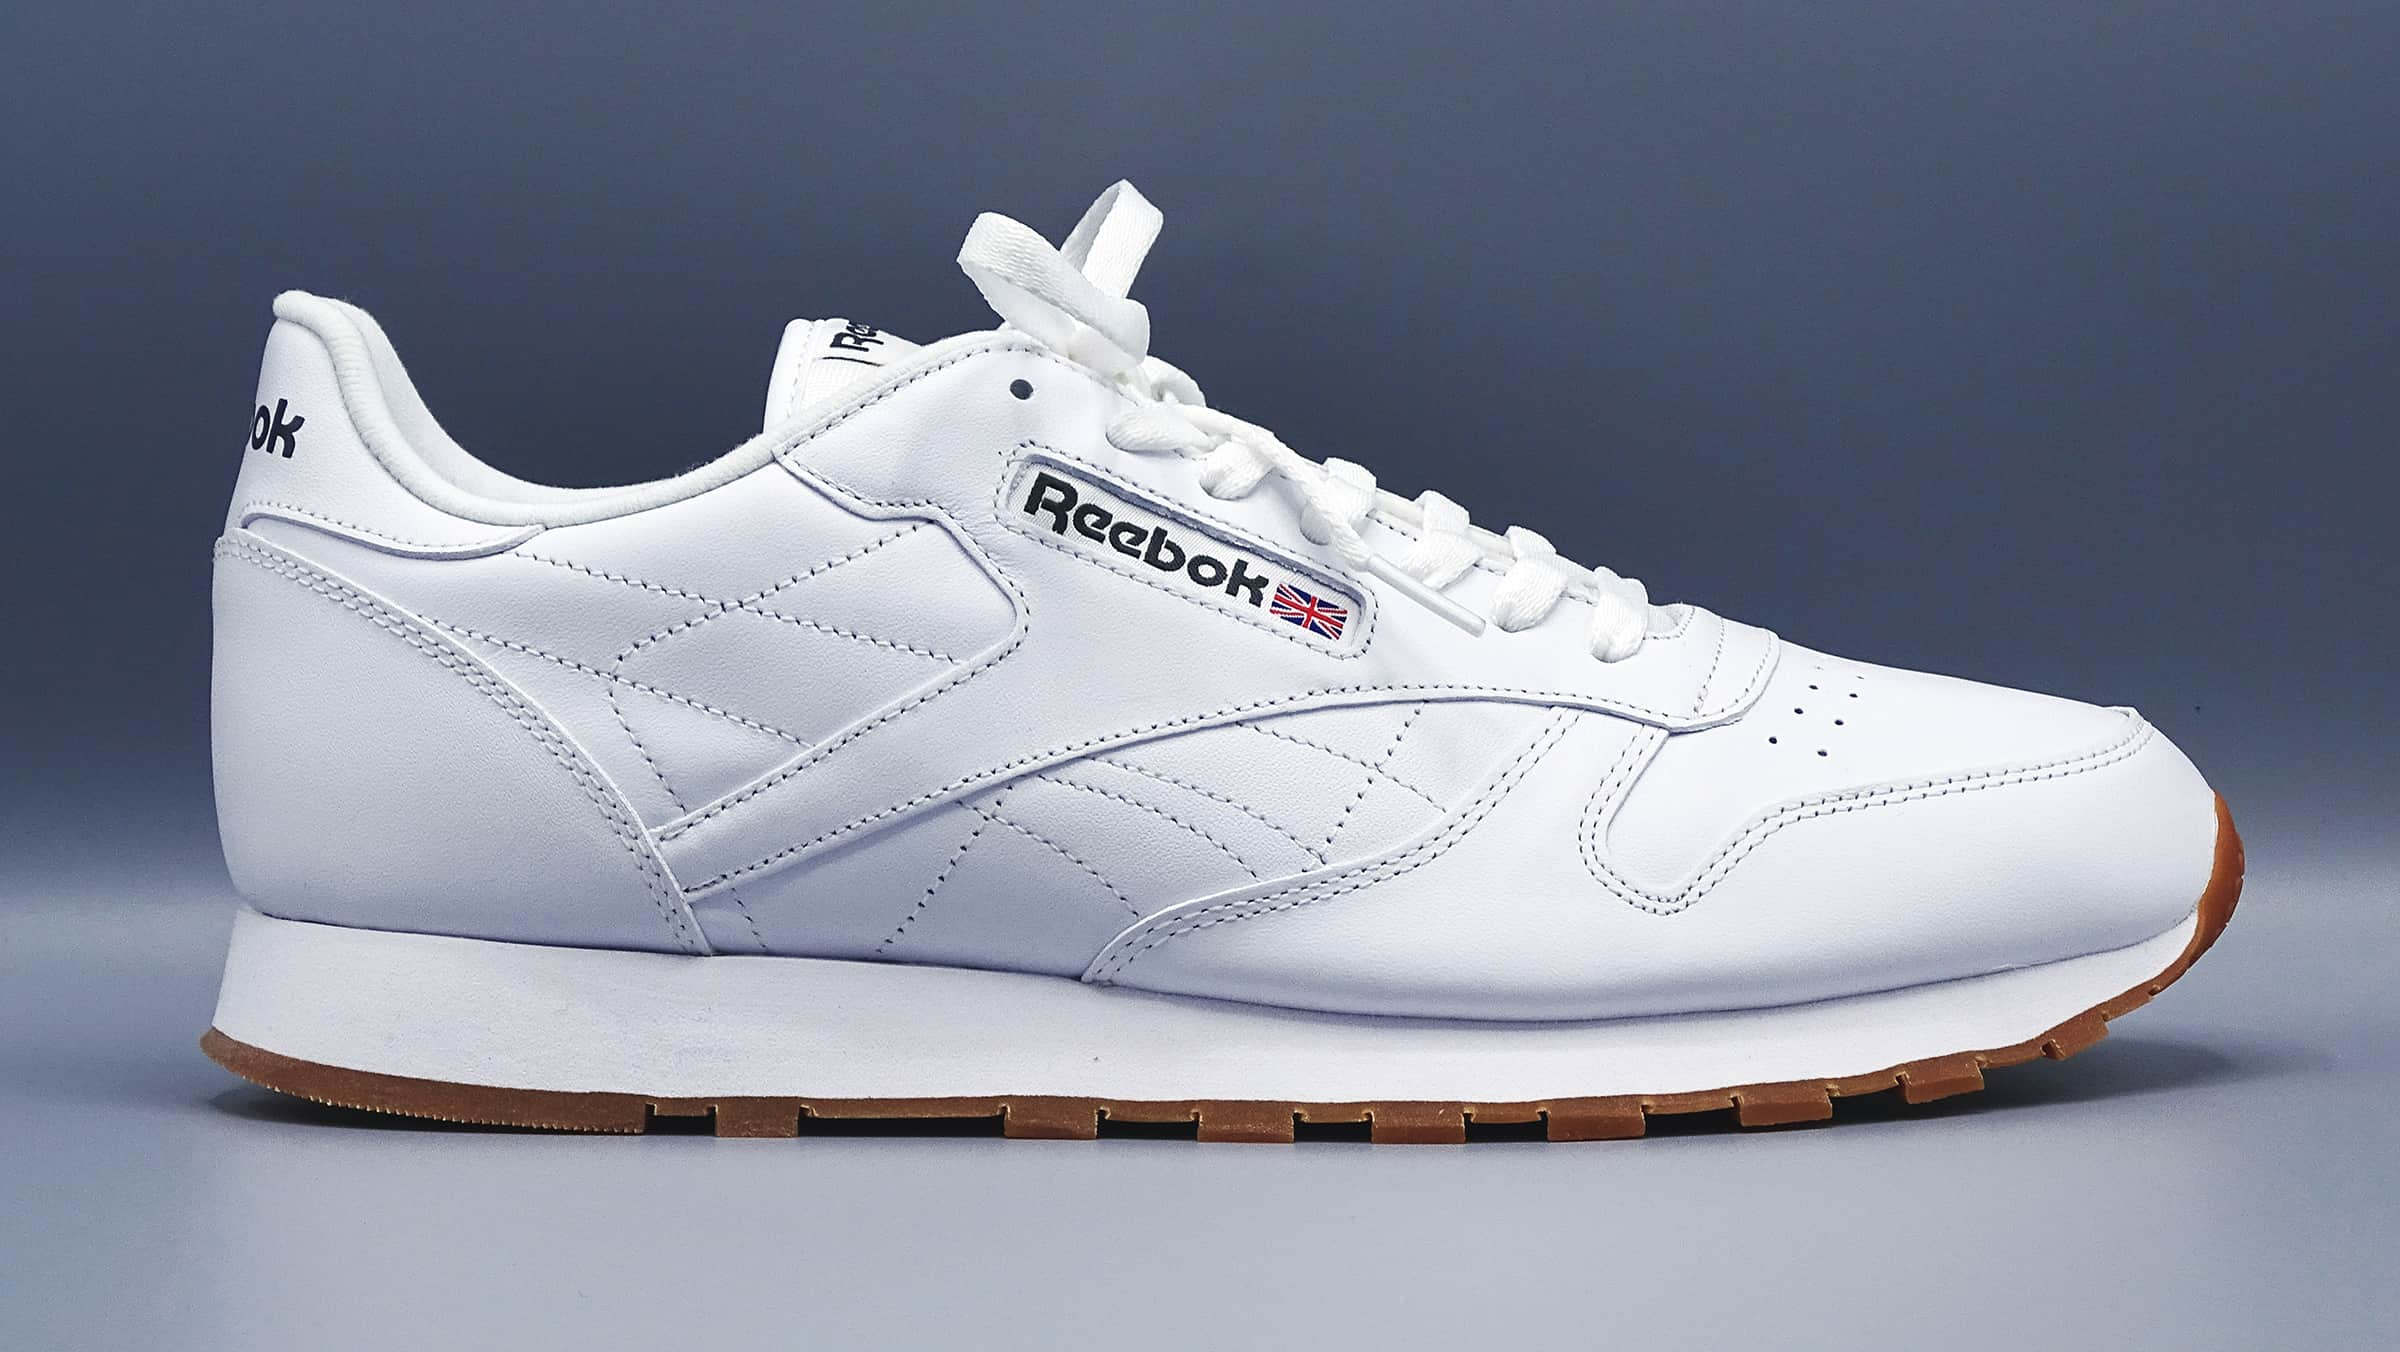 White reebok men's classic sneaker with gum colored bottom